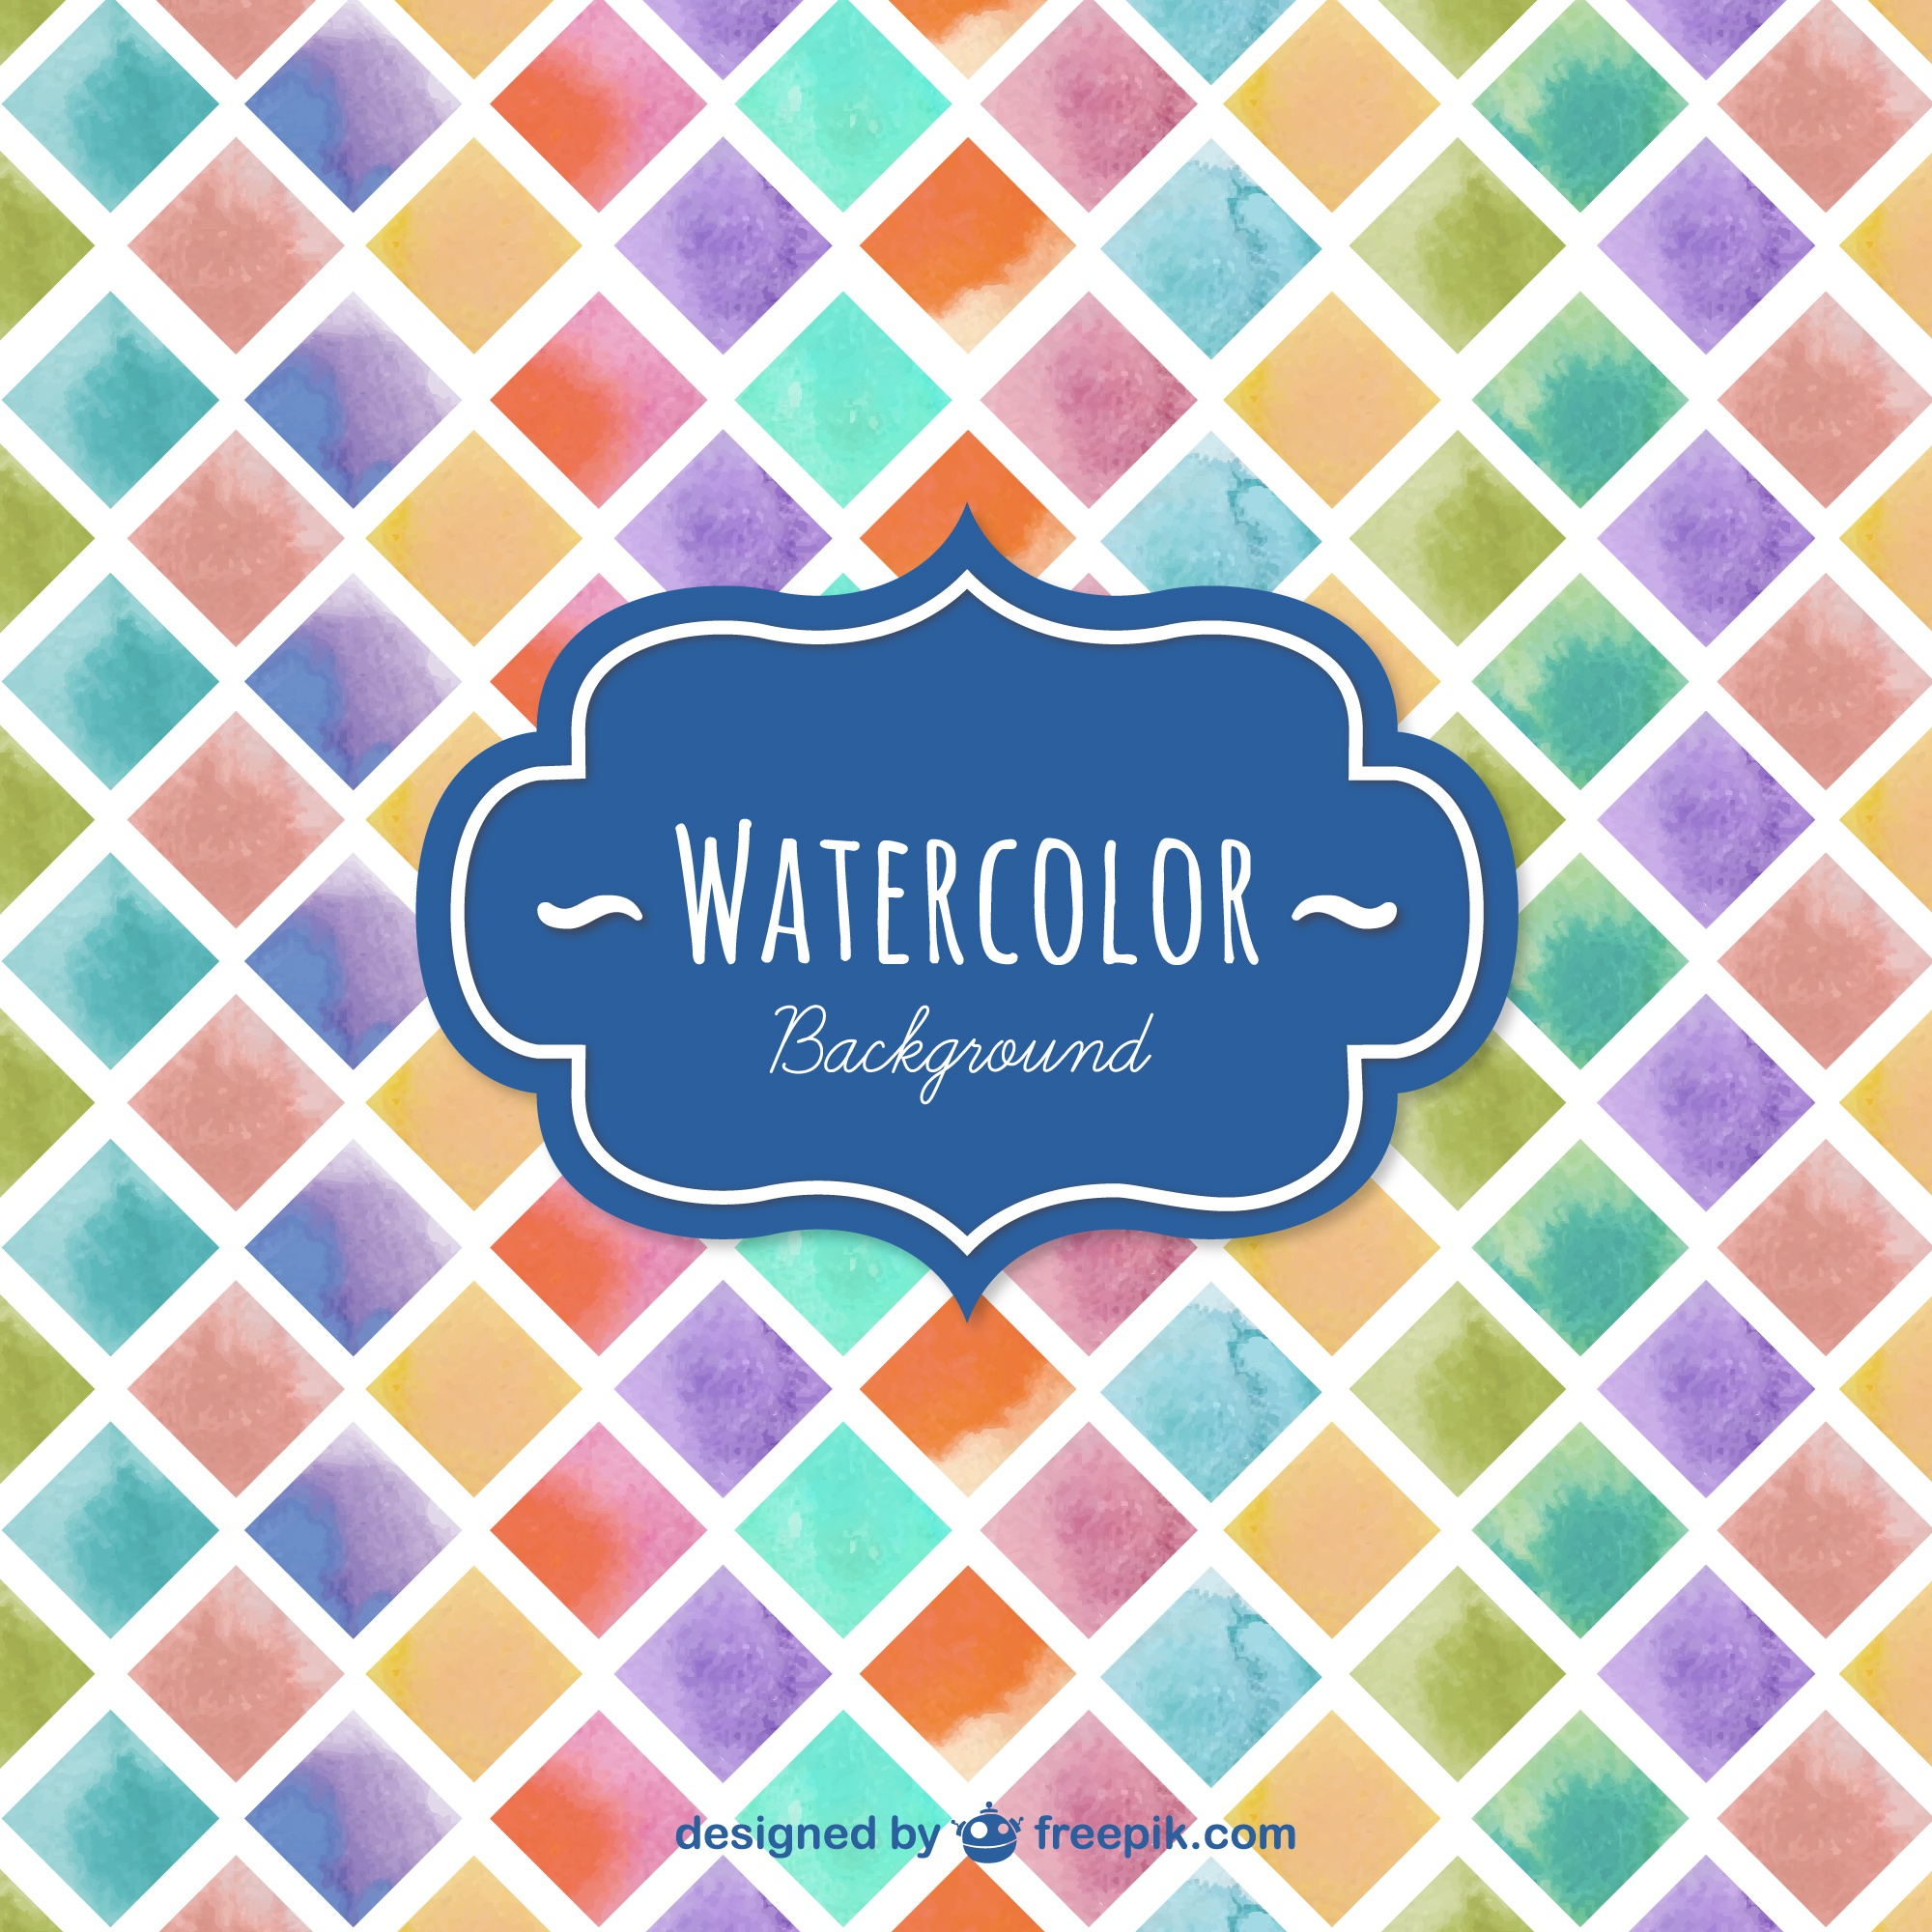 Watercolor squares background